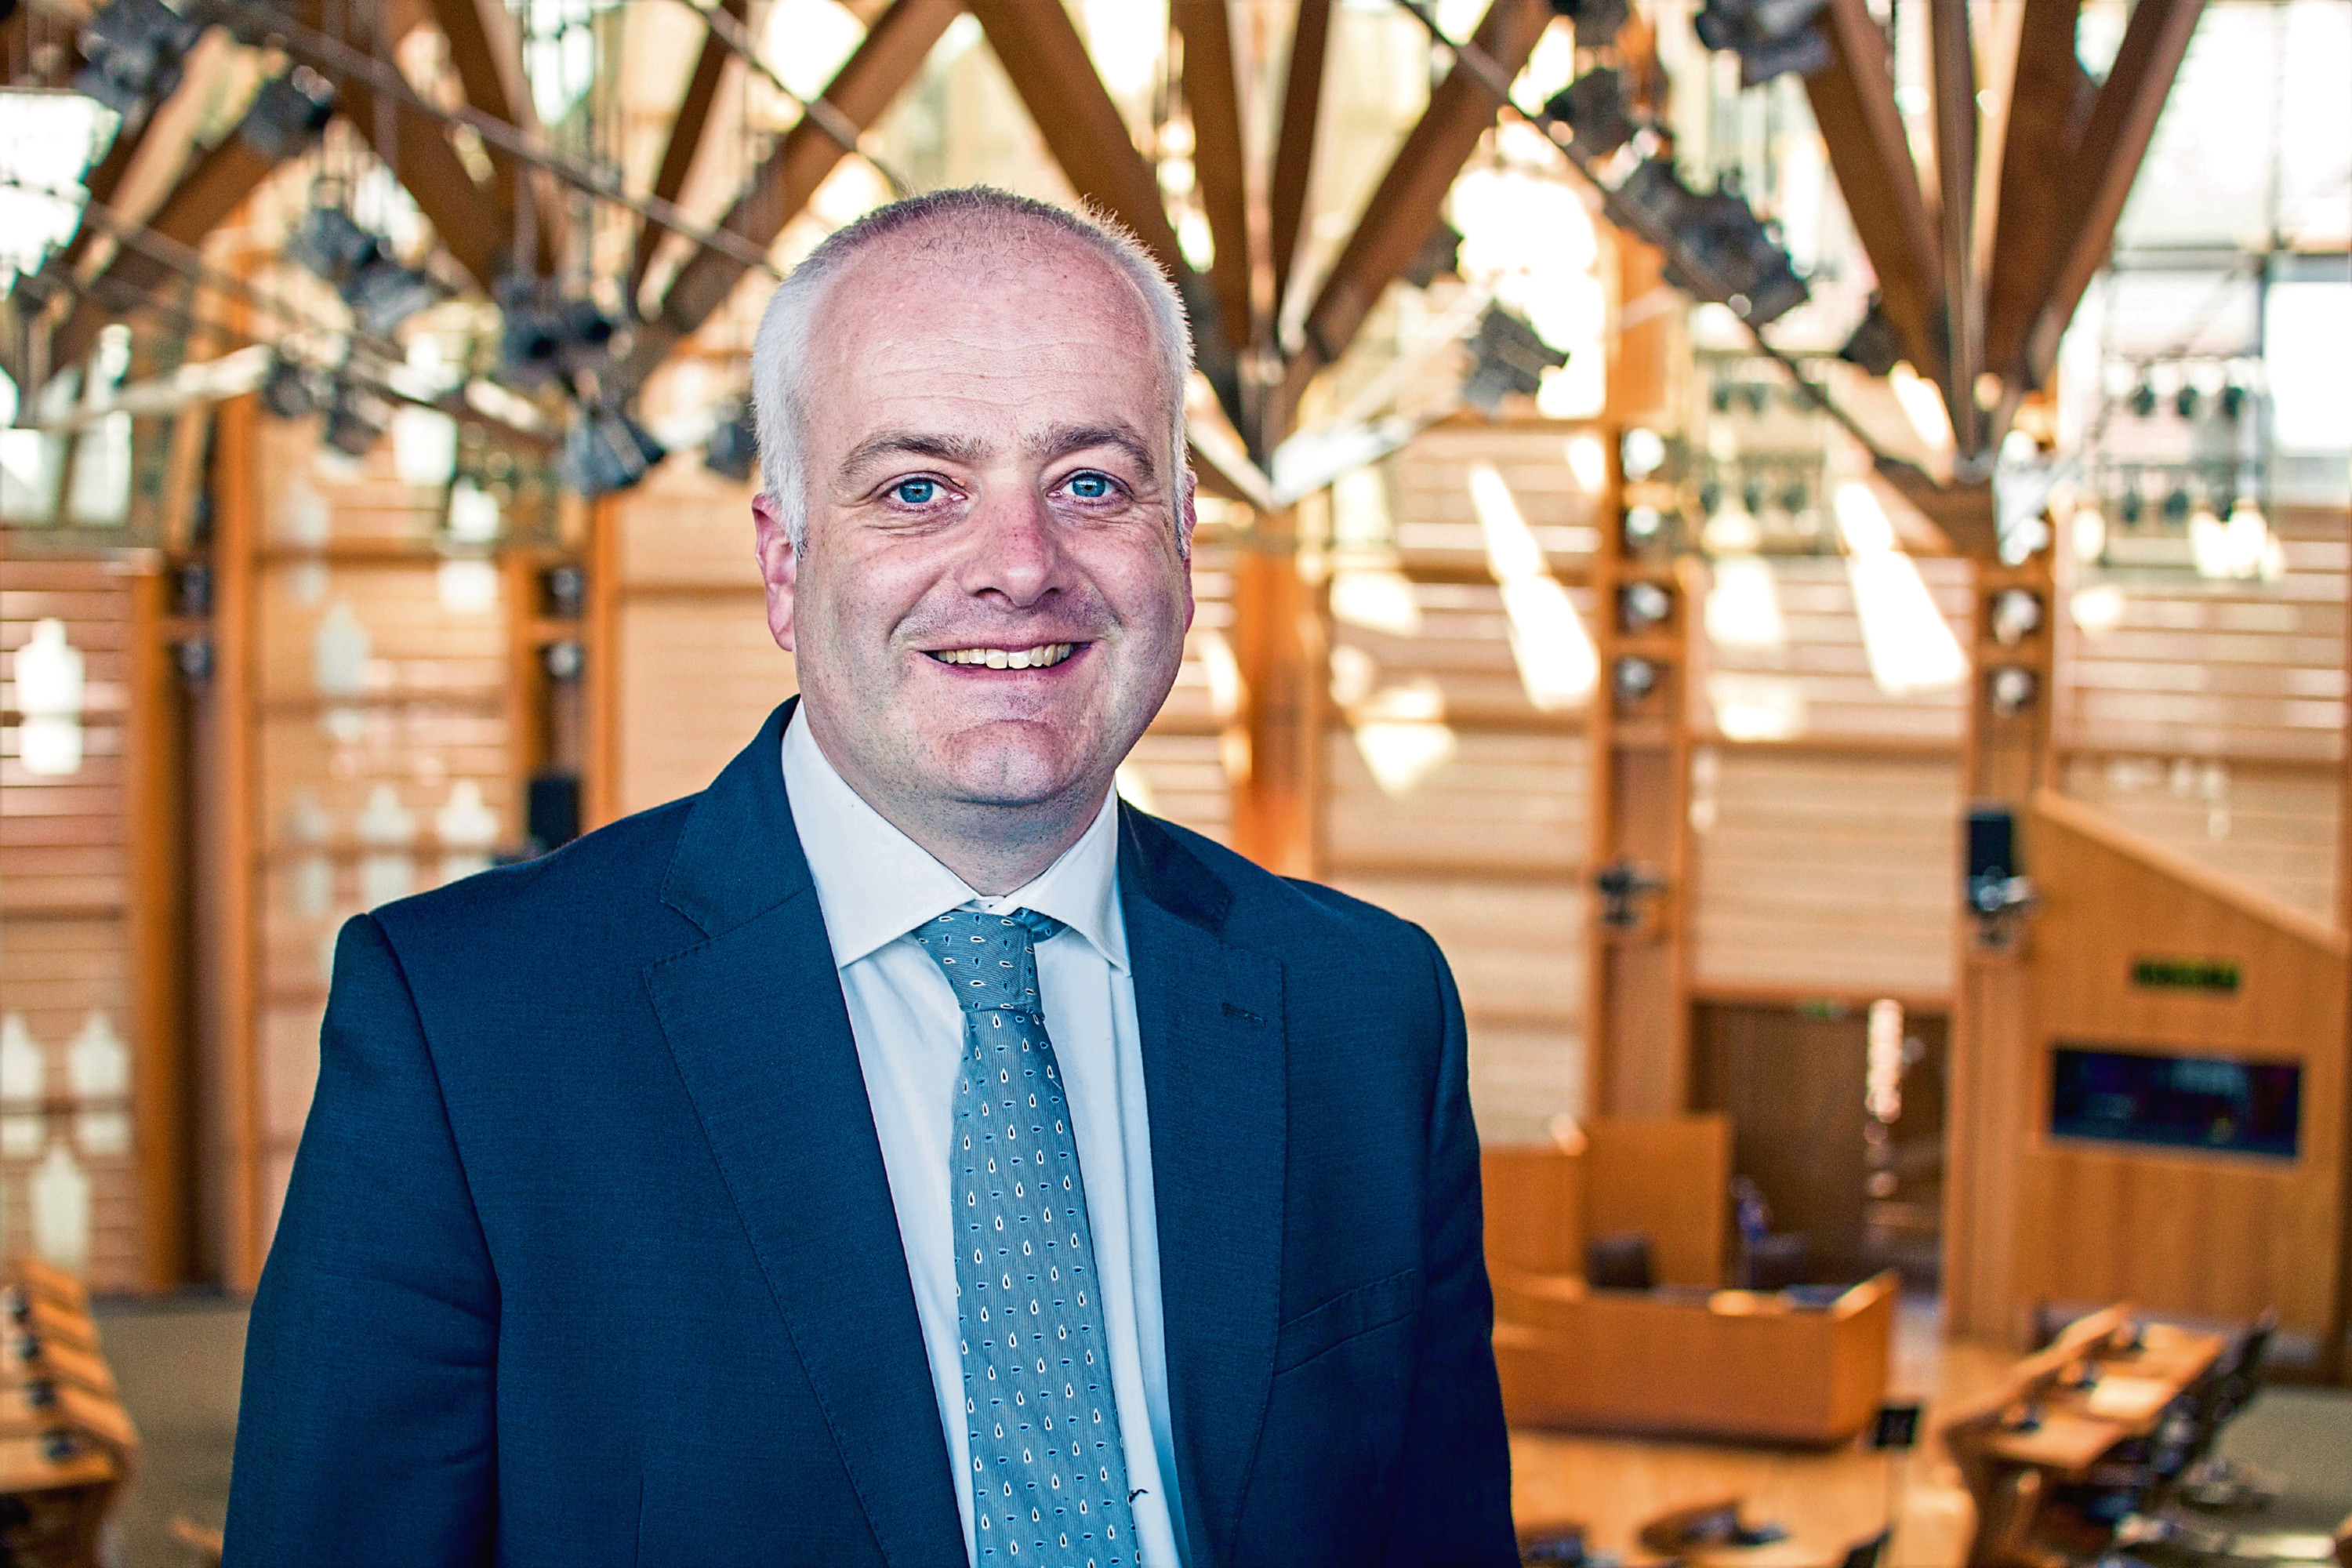 Mark Ruskell, Green MSP for Mid Scotland and Fife, at the Scottish Parliament